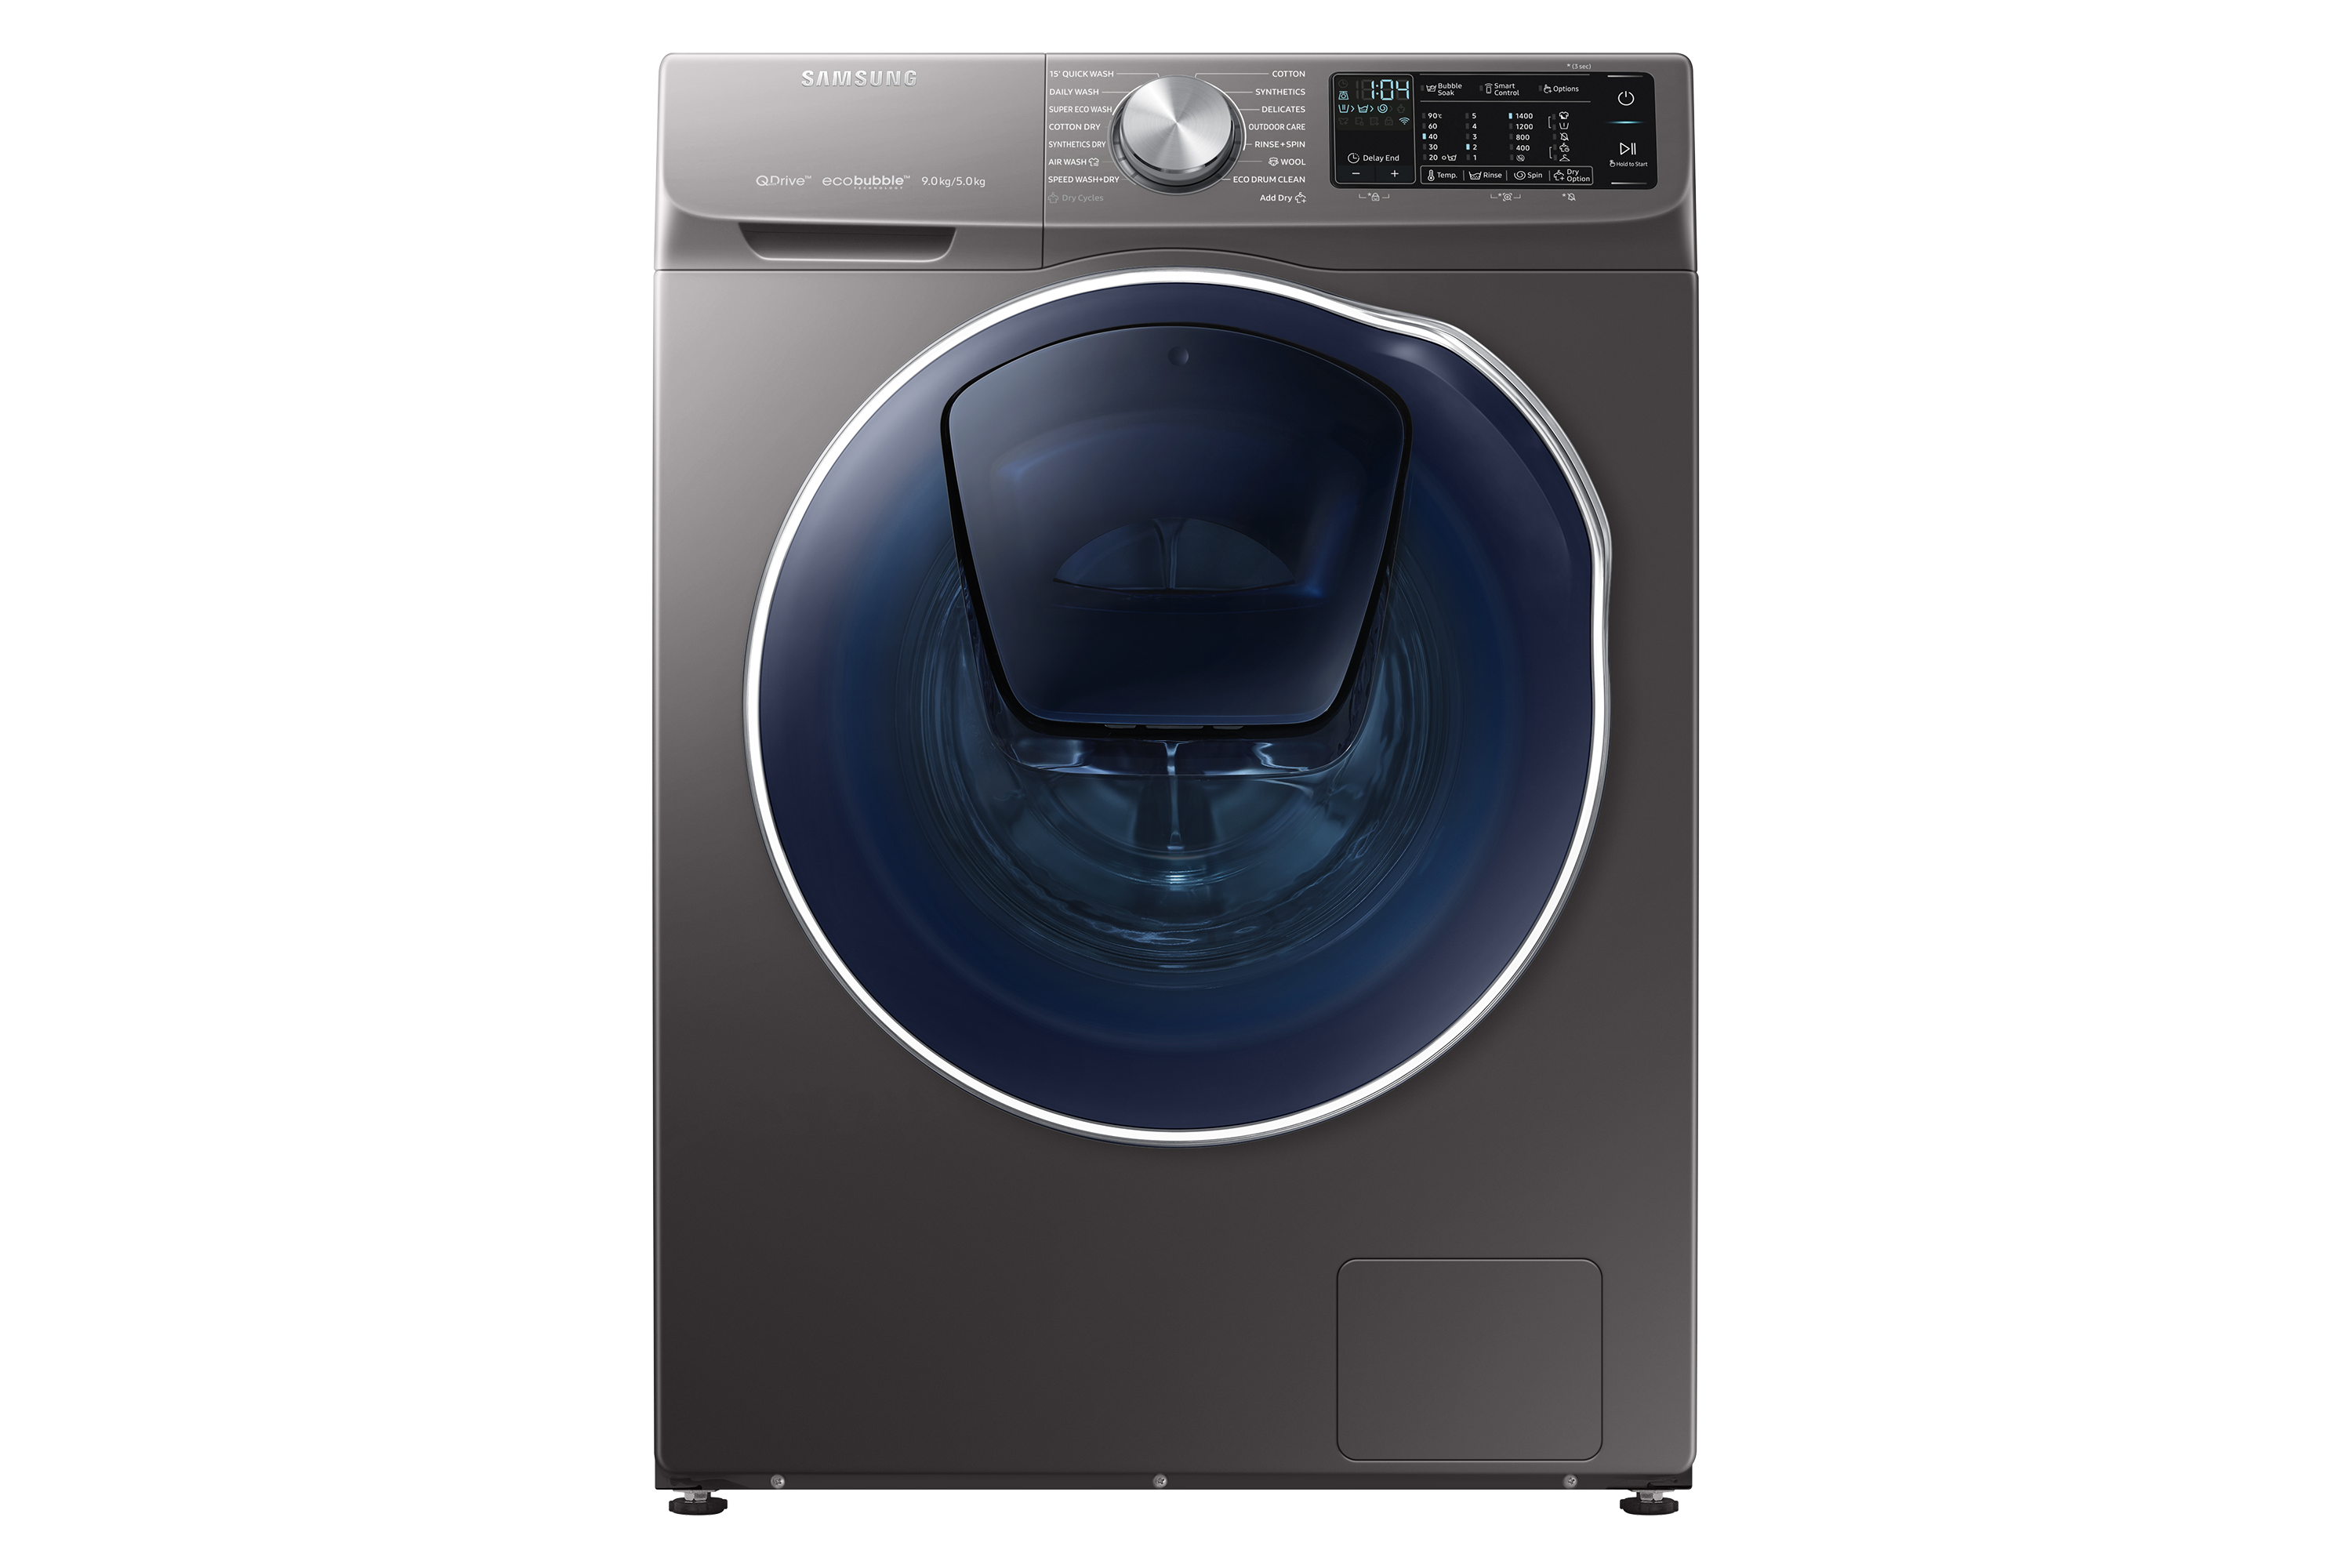 Samsung Wd6800 Quickdrive Washer Dryer With Addwash 9kg Samsung Uk Washer And Dryer Samsung Washing Machine Washer